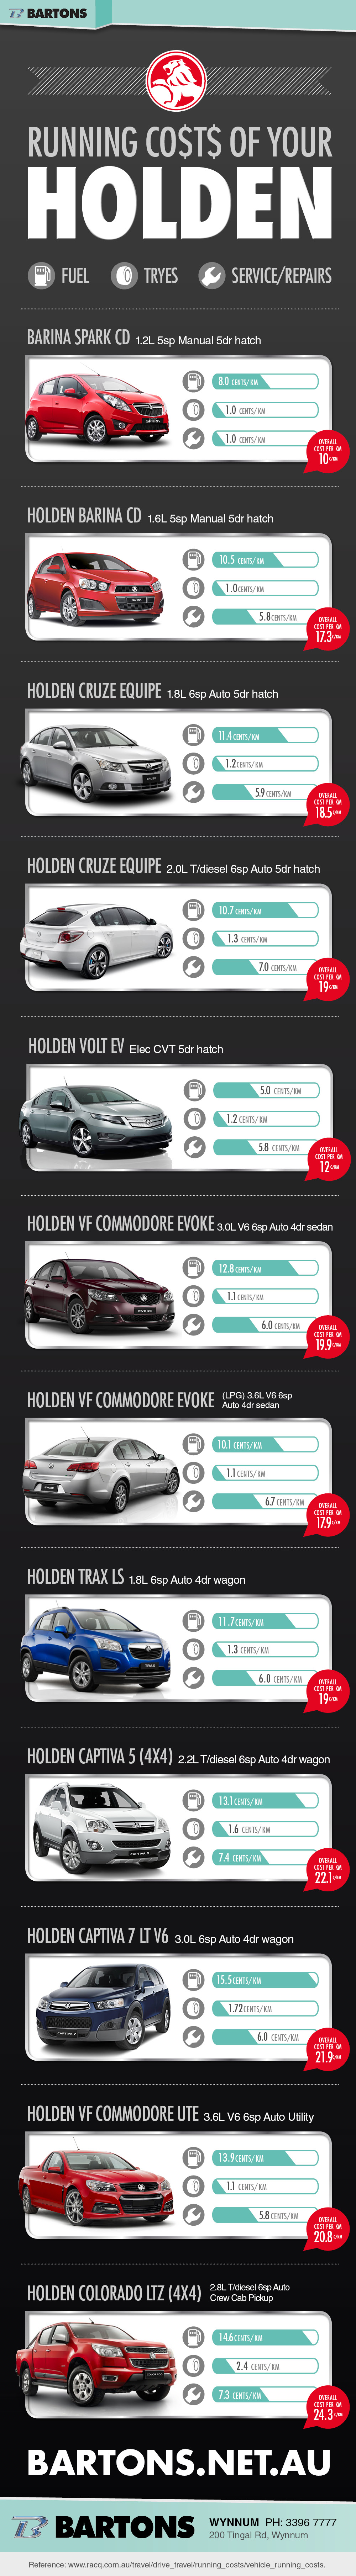 Running Costs of Your Holden